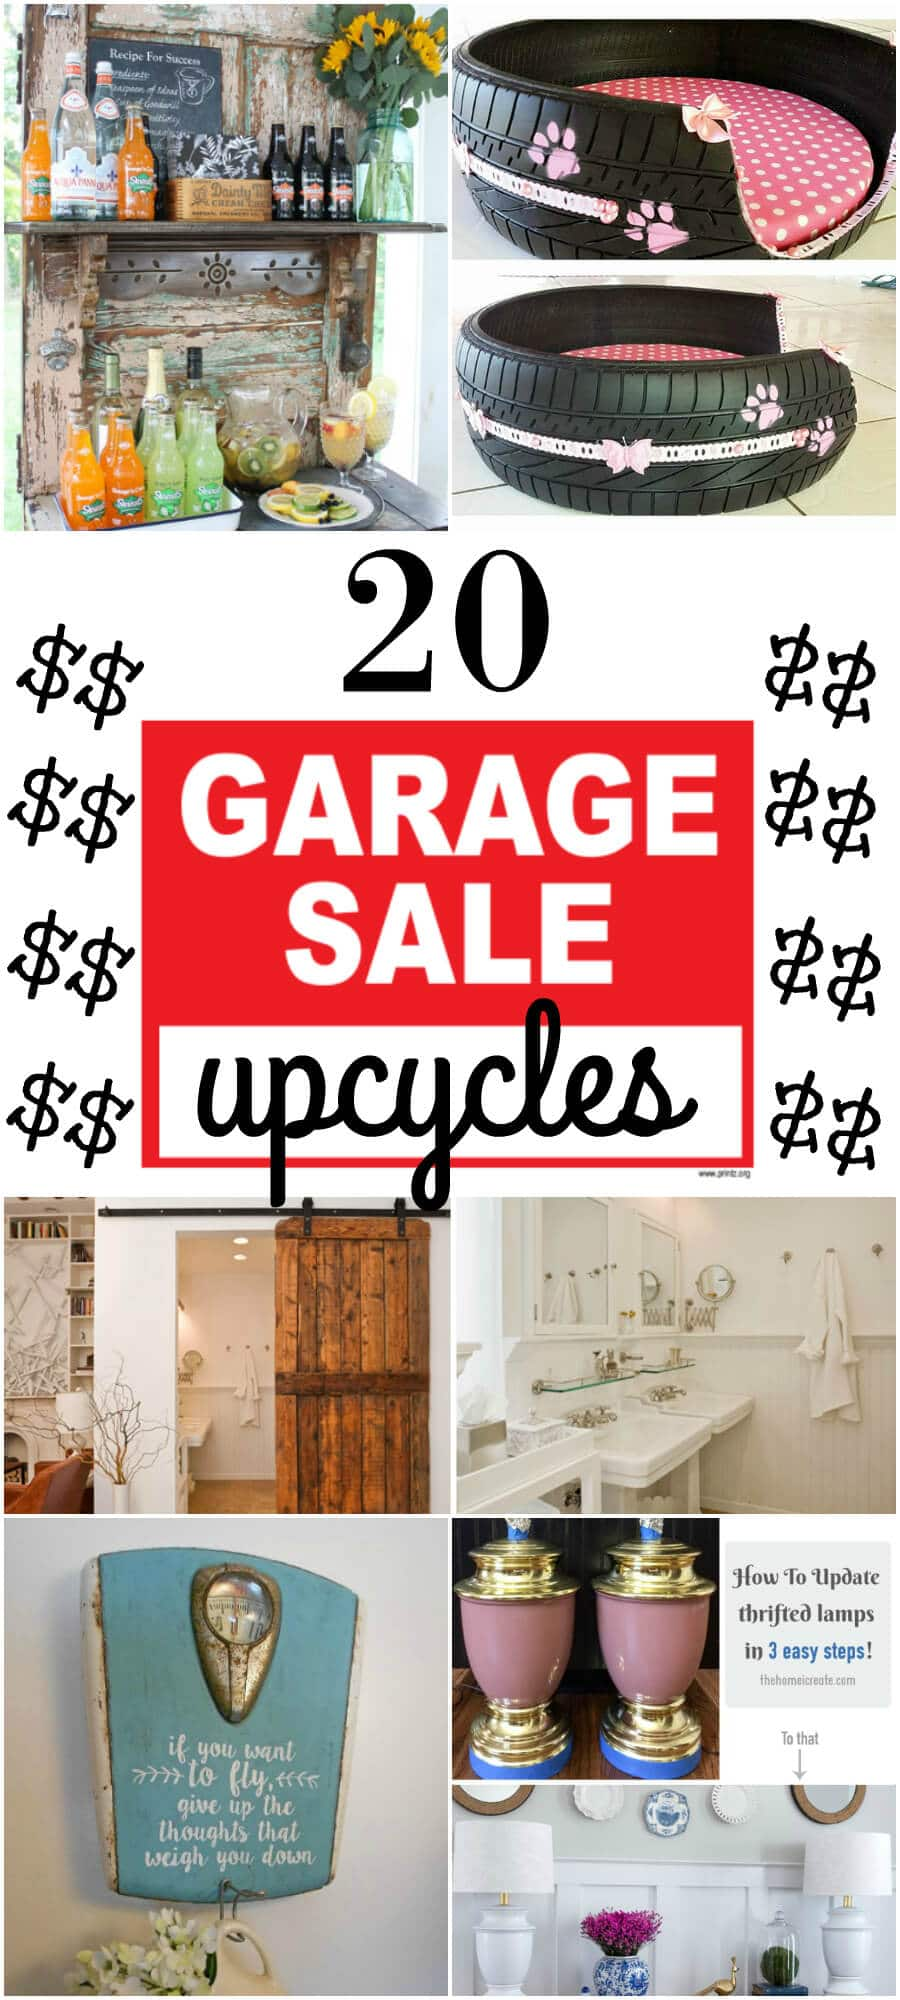 Garage Sale Upcycles | DIY Upcycles | www.madewithhappy.com